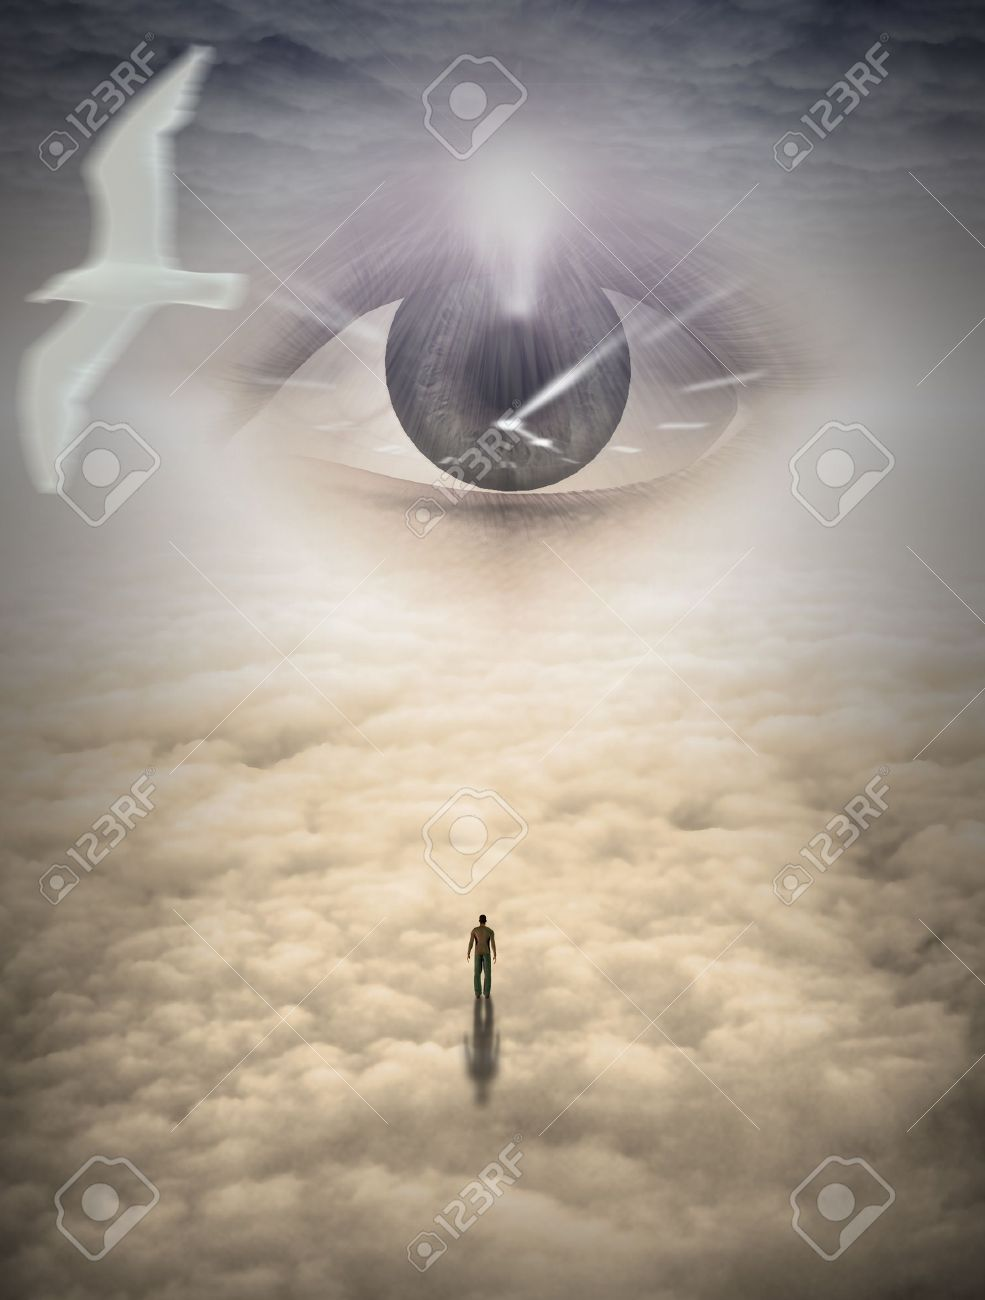 Surreal Composition Stock Photo - 7869594